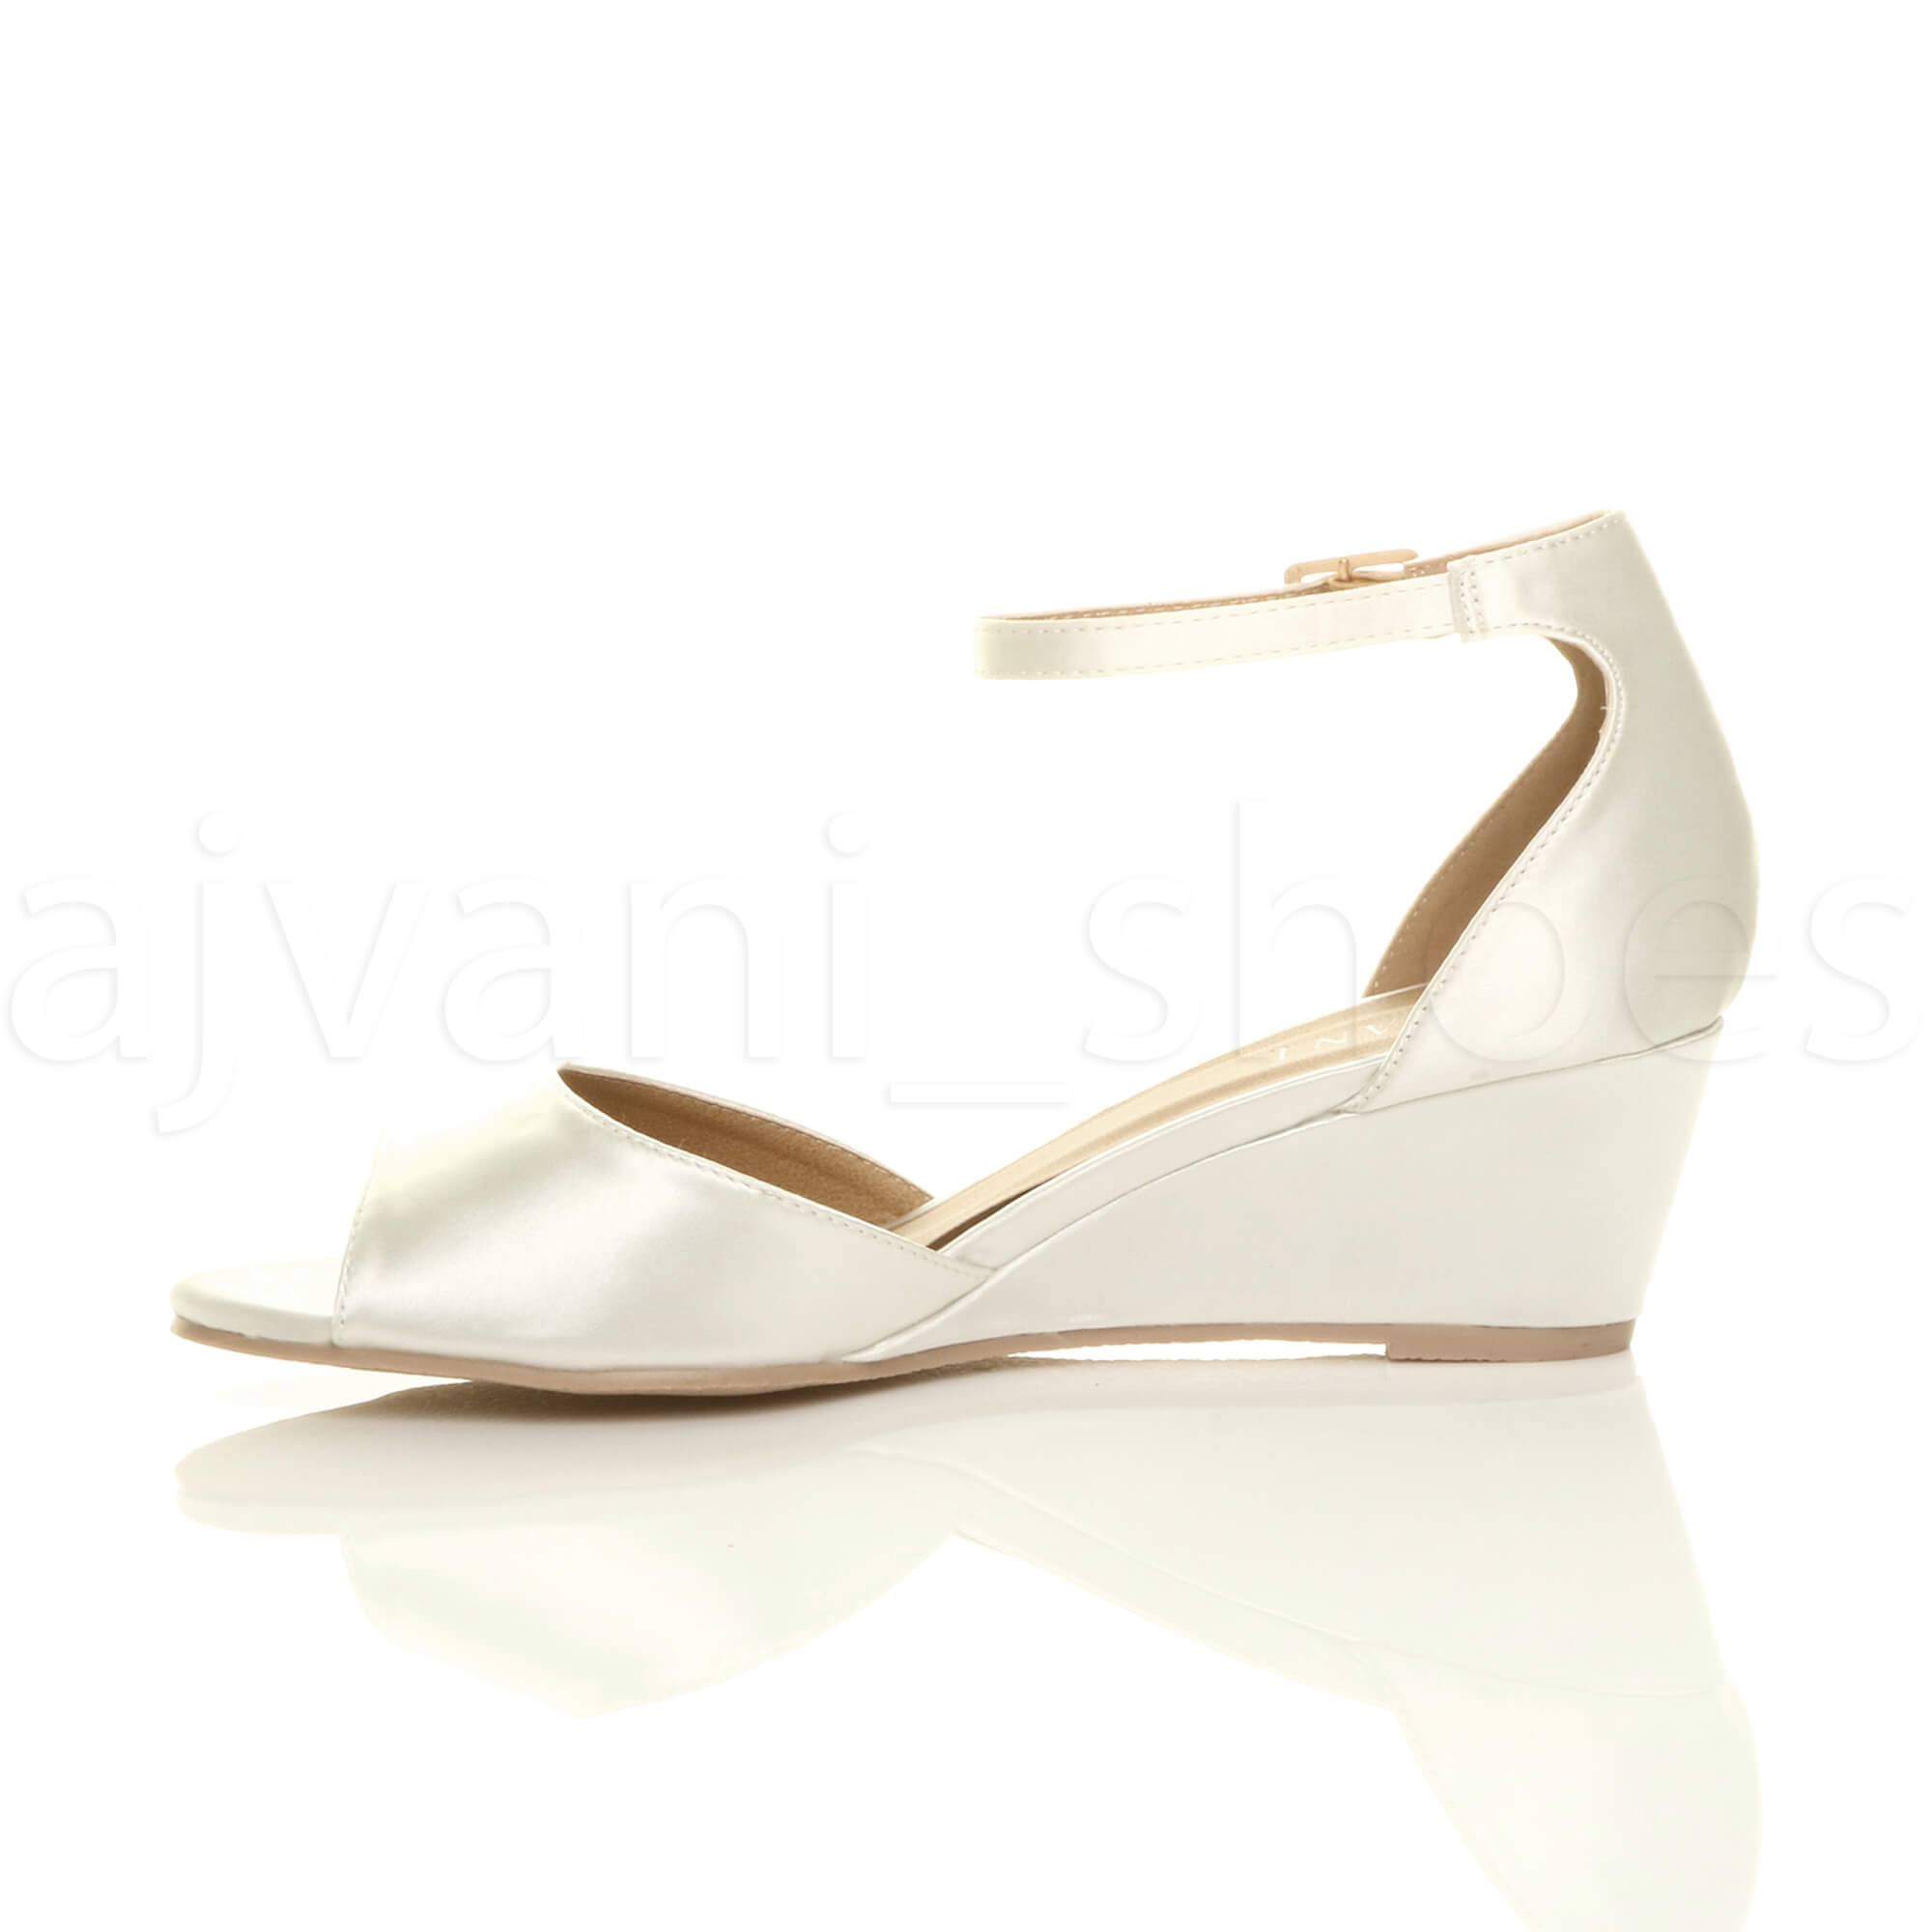 WOMENS-LADIES-LOW-MID-WEDGE-HEEL-ANKLE-STRAP-SMART-CASUAL-EVENING-SANDALS-SIZE thumbnail 68